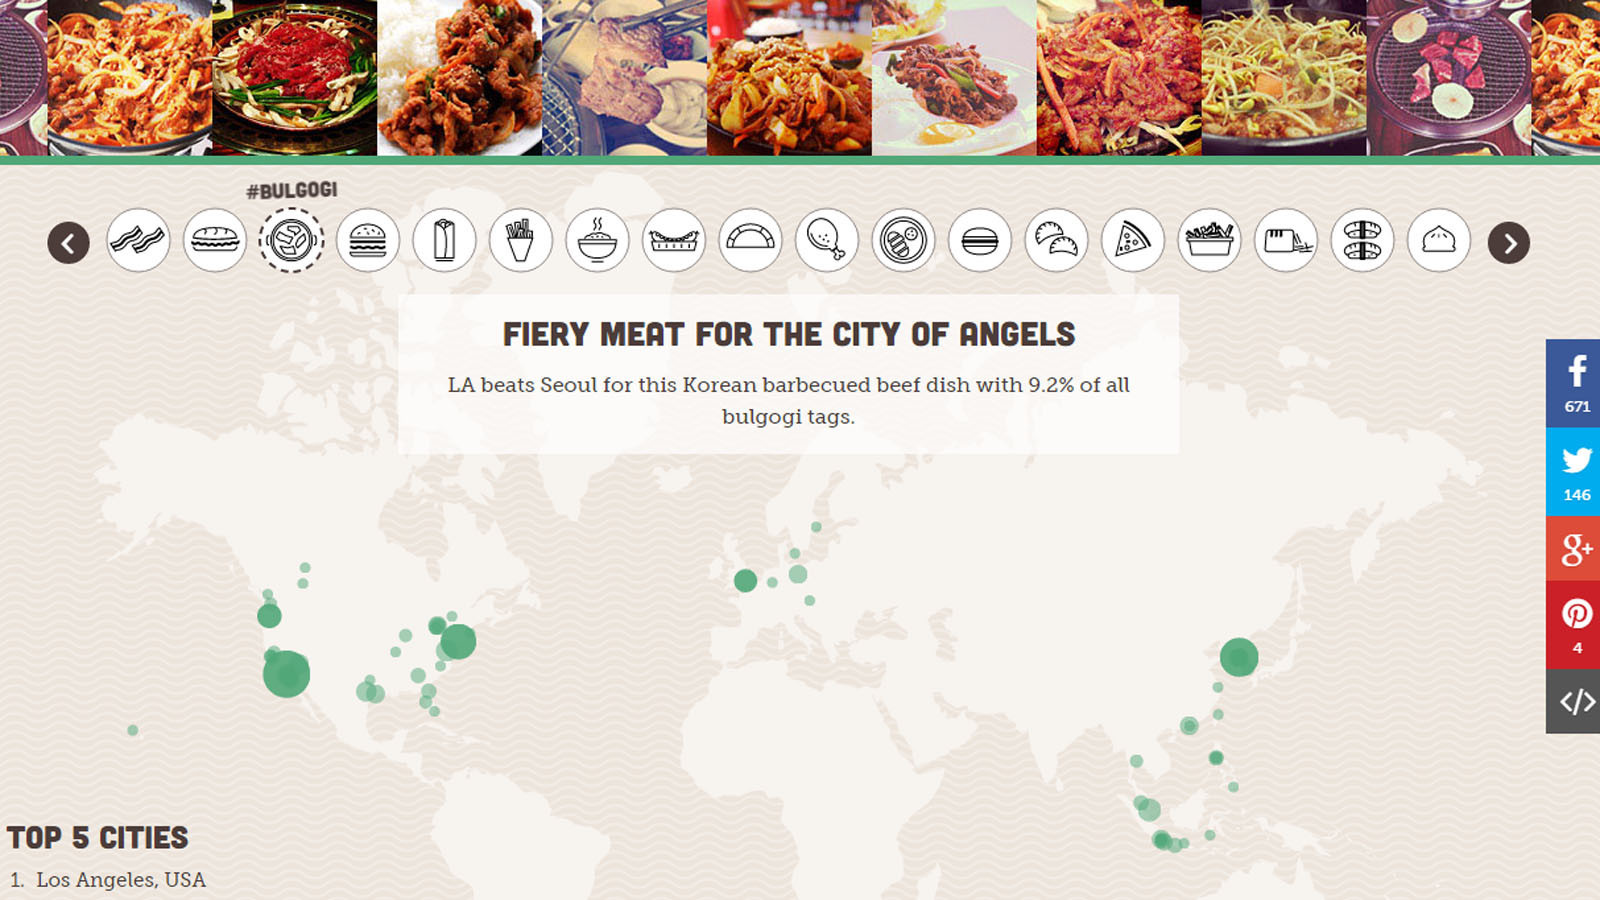 Interactive Instagram Food Map Which Cities Share The Most - Los angeles map by city